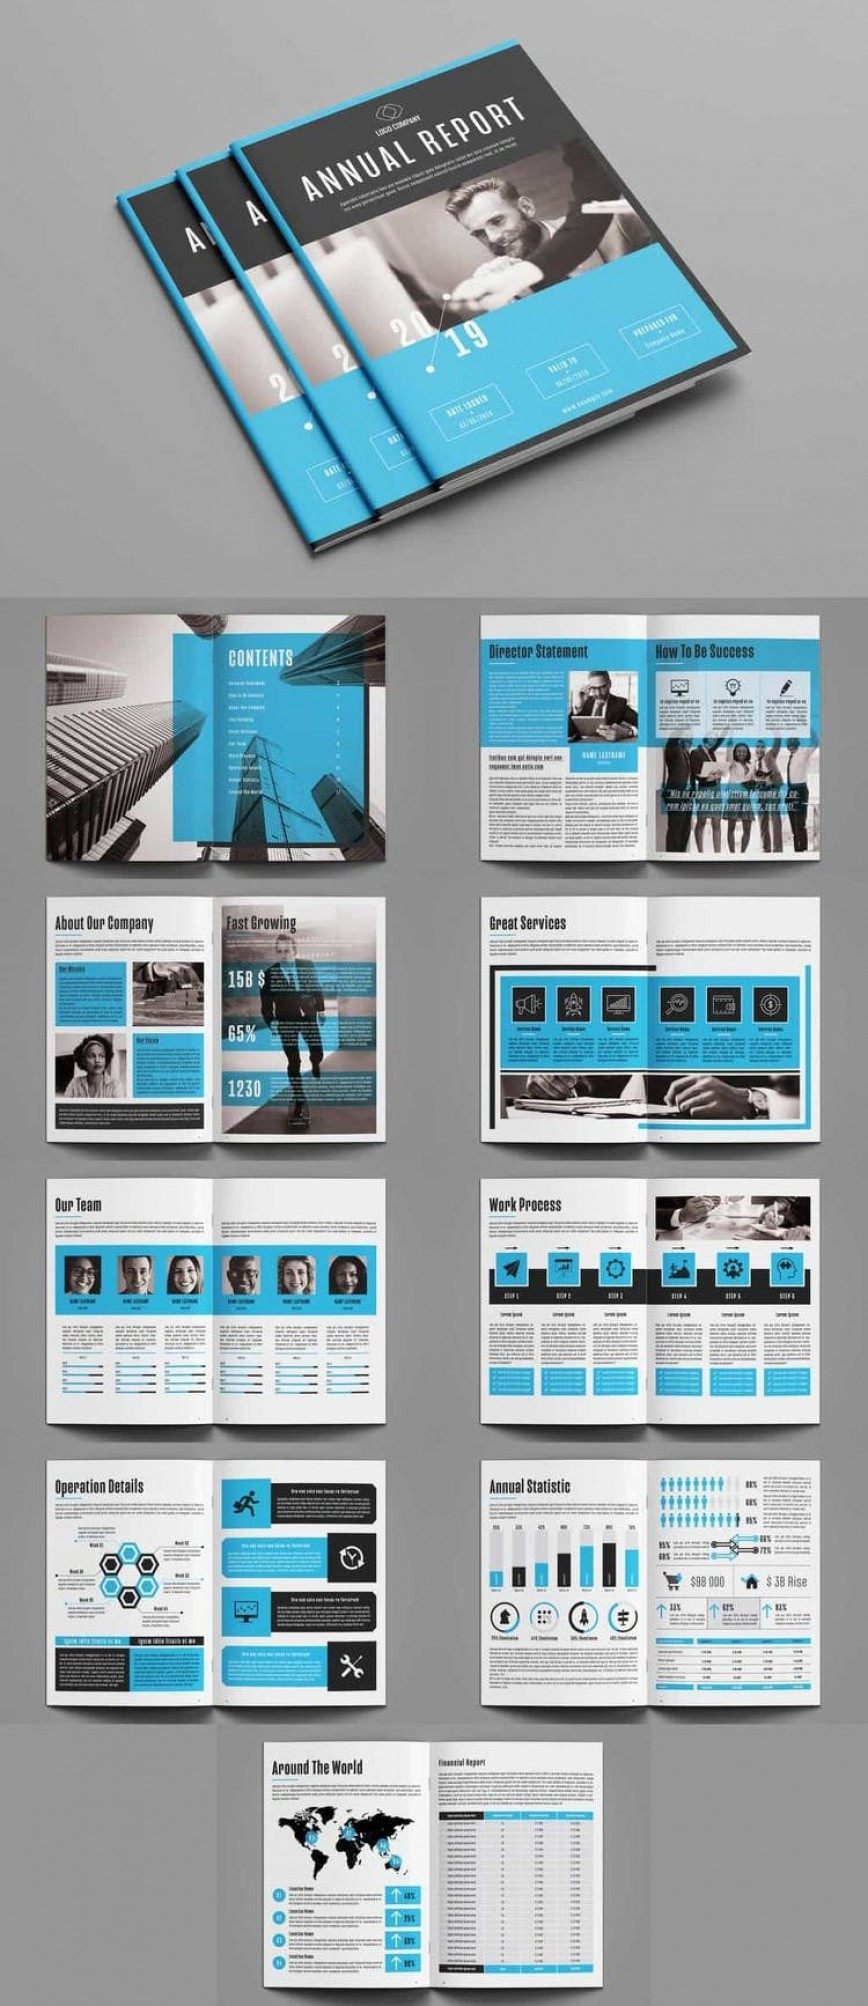 005 Best Annual Report Design Template Indesign Concept  Free Download868